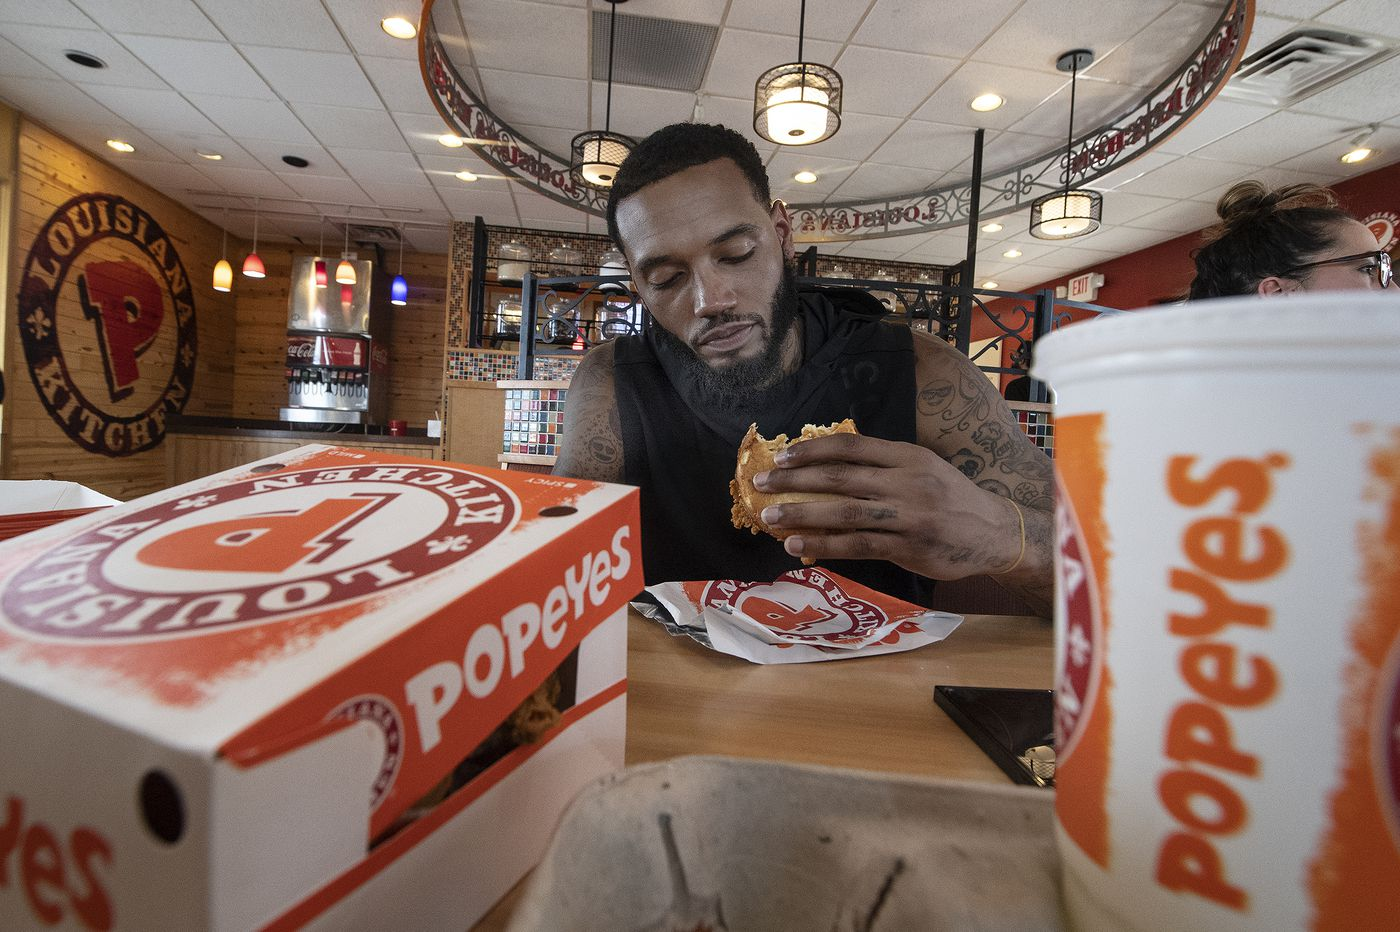 Philly and the Sixers' Mike Scott weigh in on Popeyes' new chicken sandwich. Is it better than Chick-fil-A?